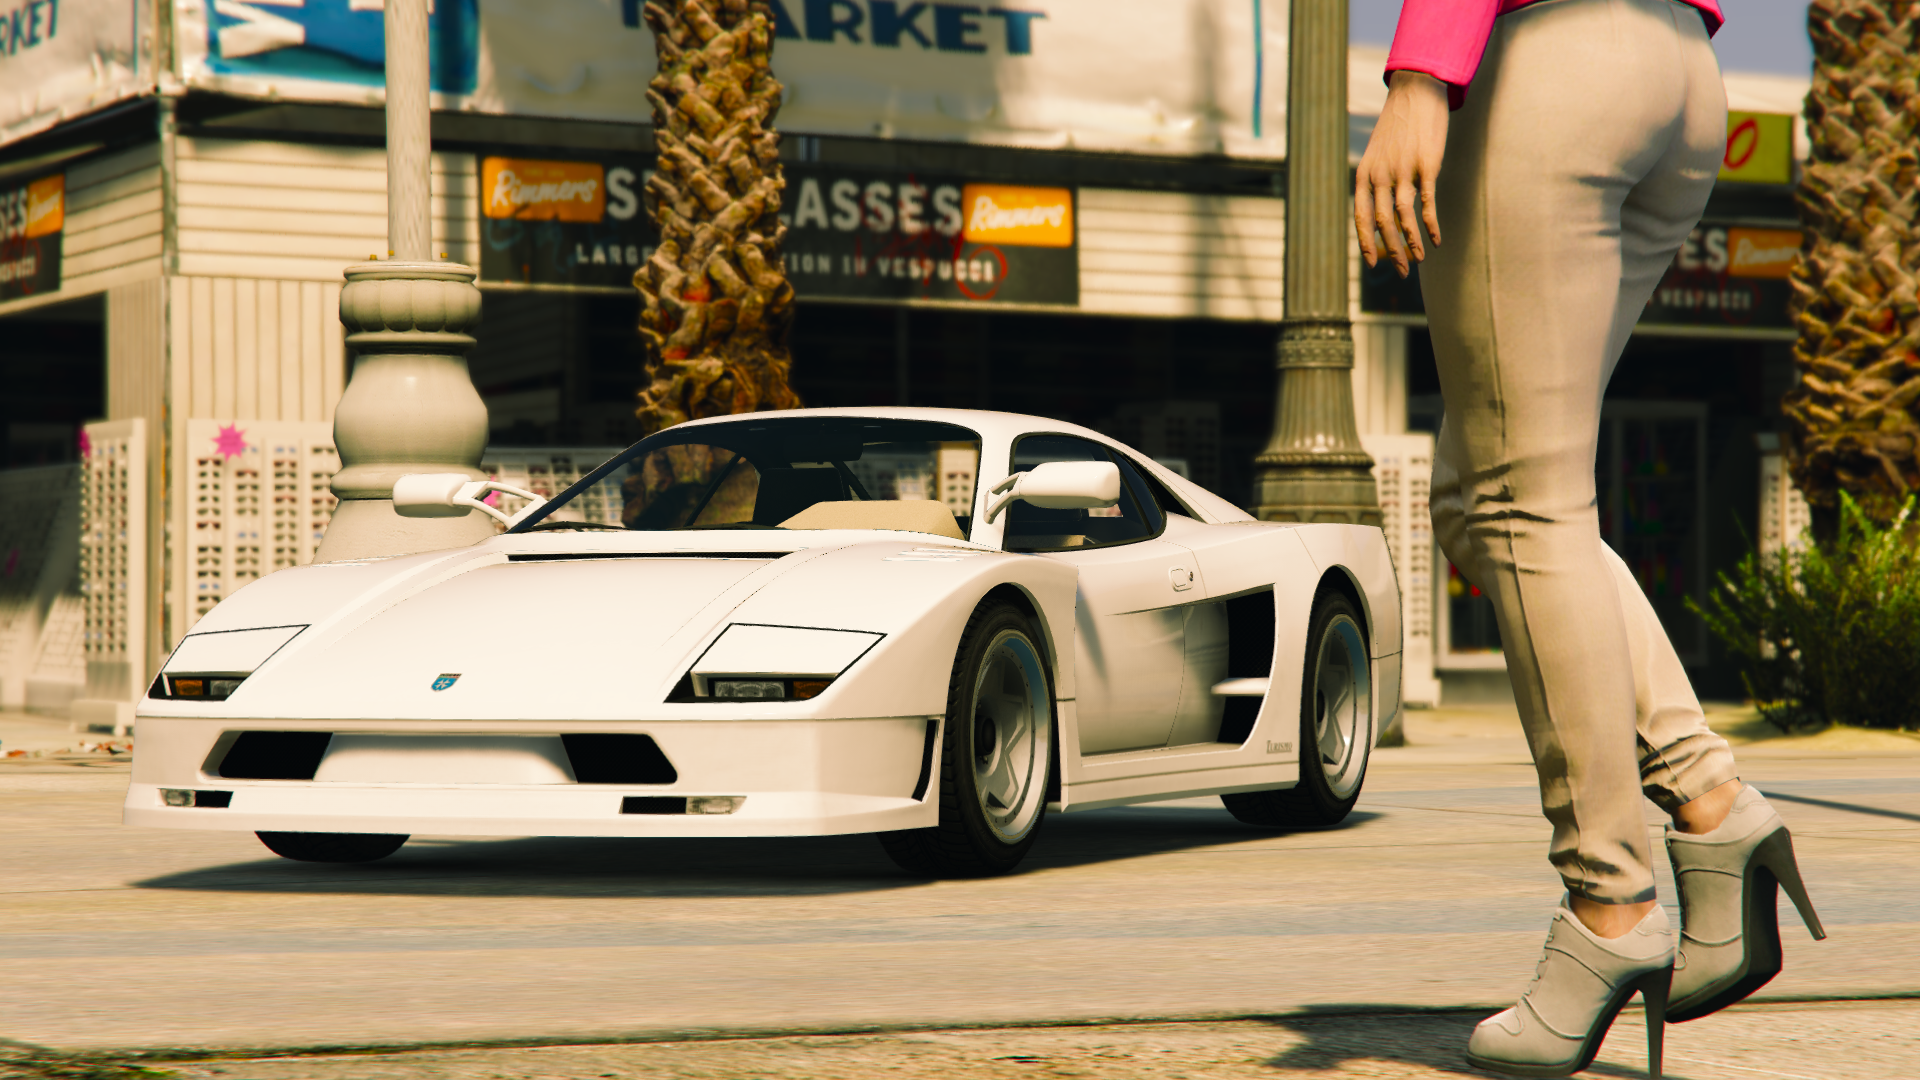 GTA V Screenshots (Official)   - Page 6 33676596692_38130e5aec_o